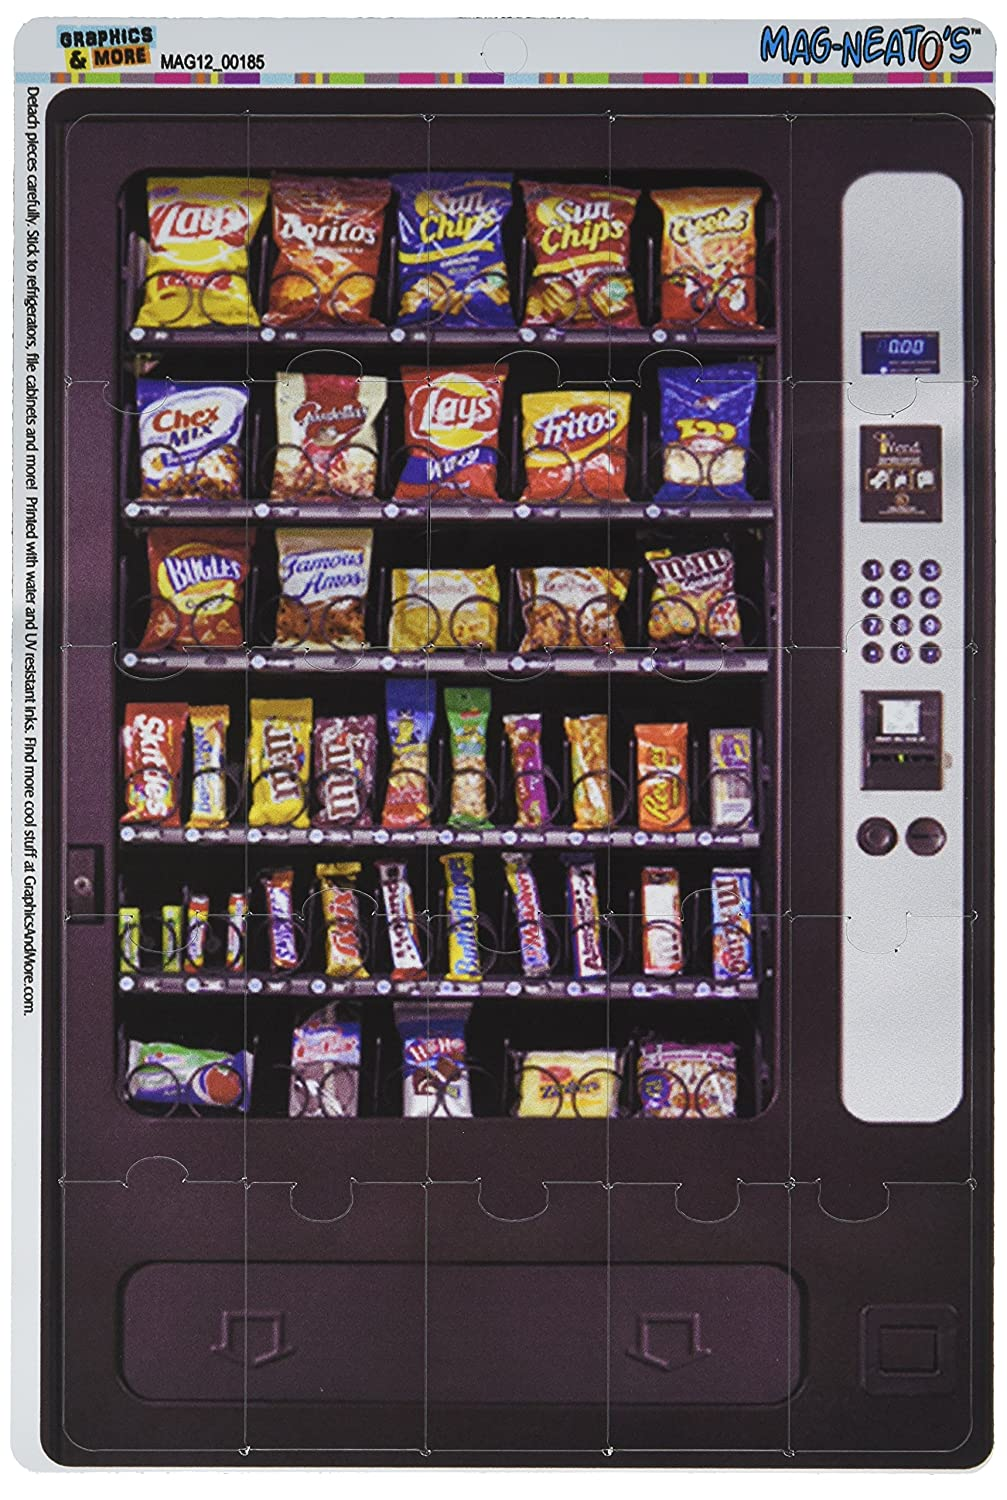 Graphics and More Snack Vending Machine Mag-Neato